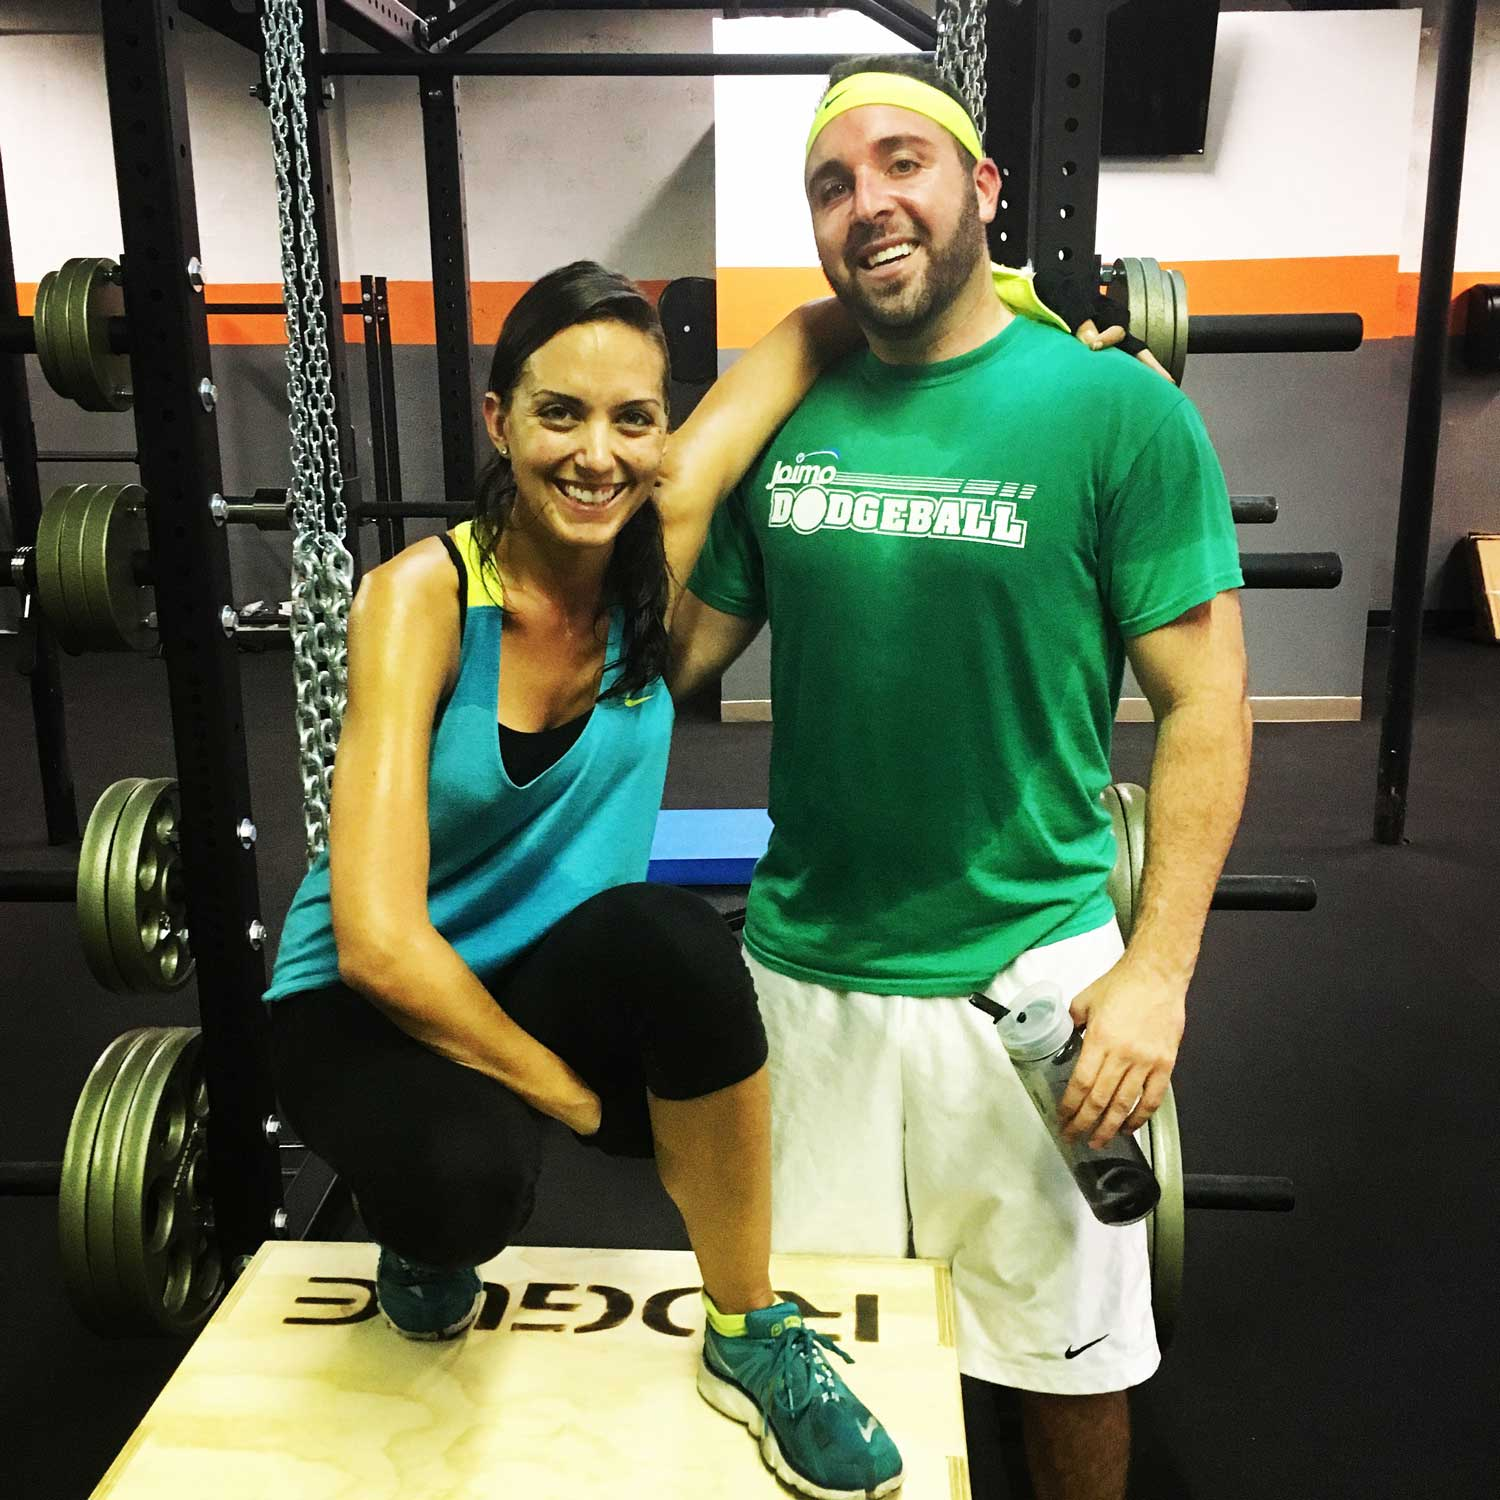 Brandt crossfit downtown fort worth -  Tbt To Last Night S Training Session At Spartan_sc With Two Of My Favorite People Steph0407 Steph Arbucci And Bshuler1012 Brandt Shuler They Powered